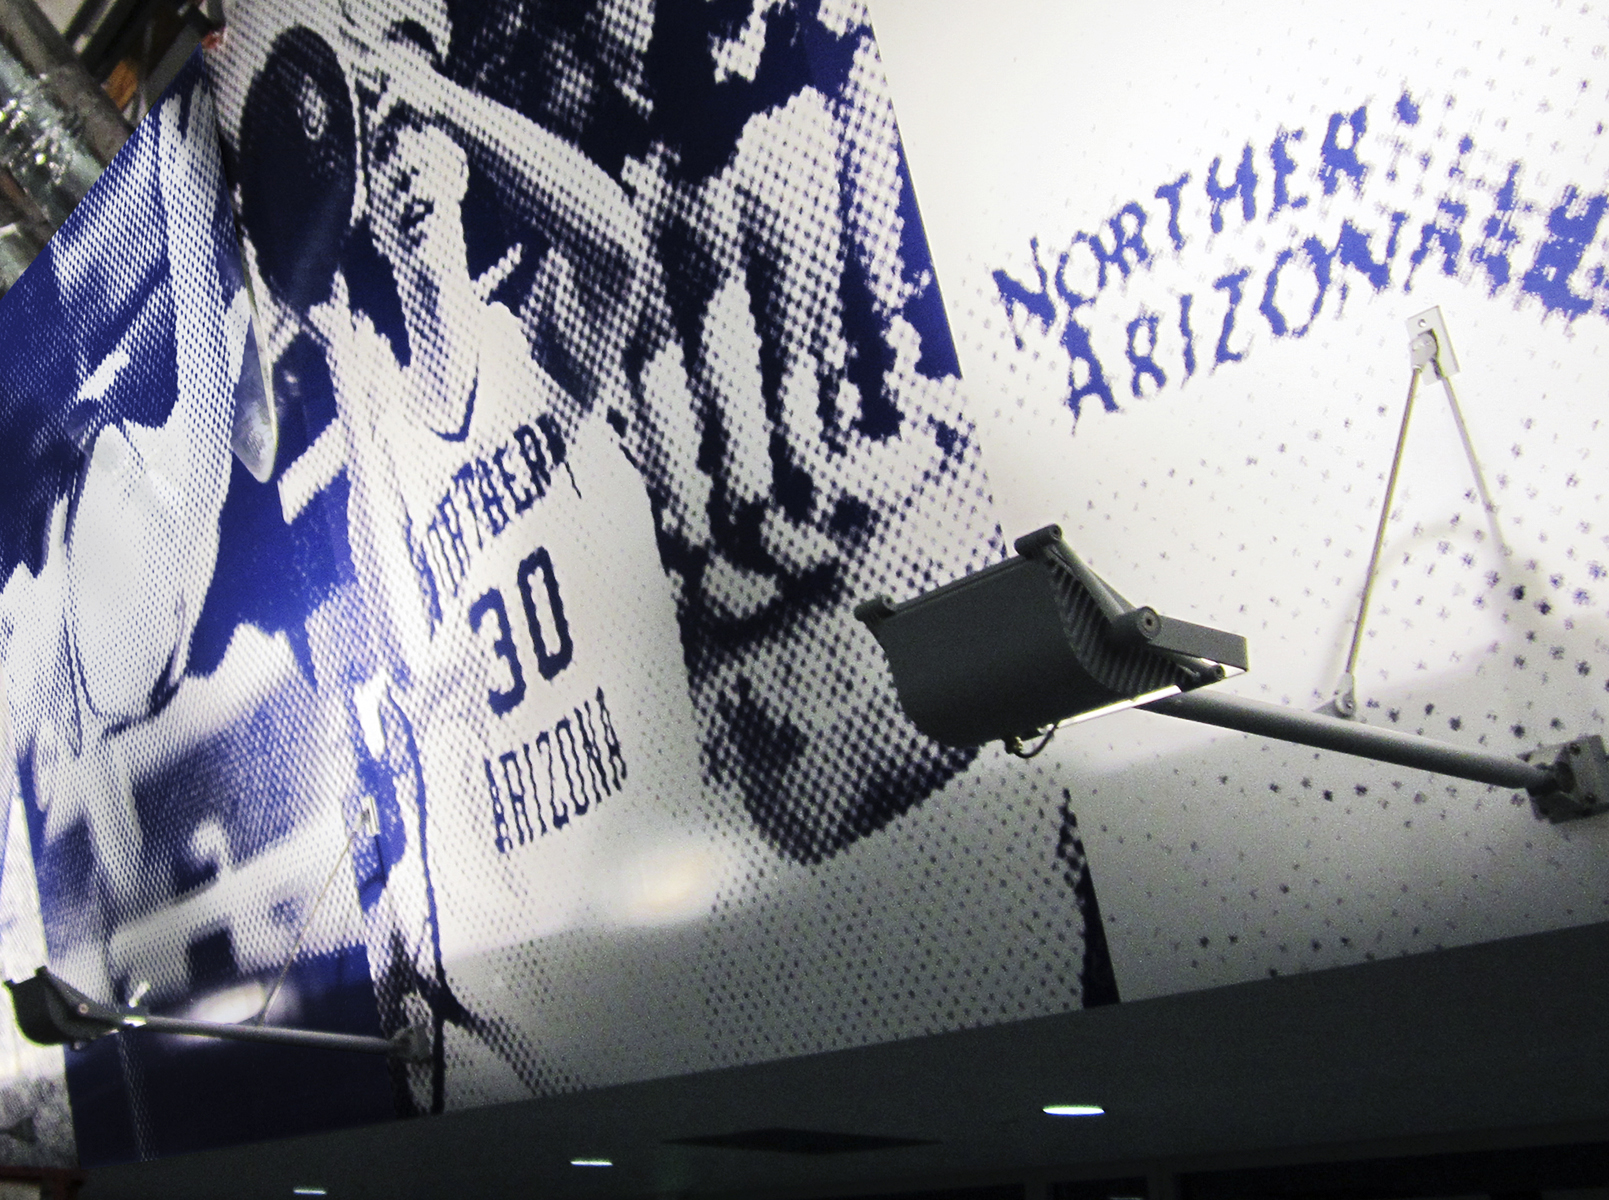 An externally lit wallpaper graphic wraps the entire Skydome concourse.